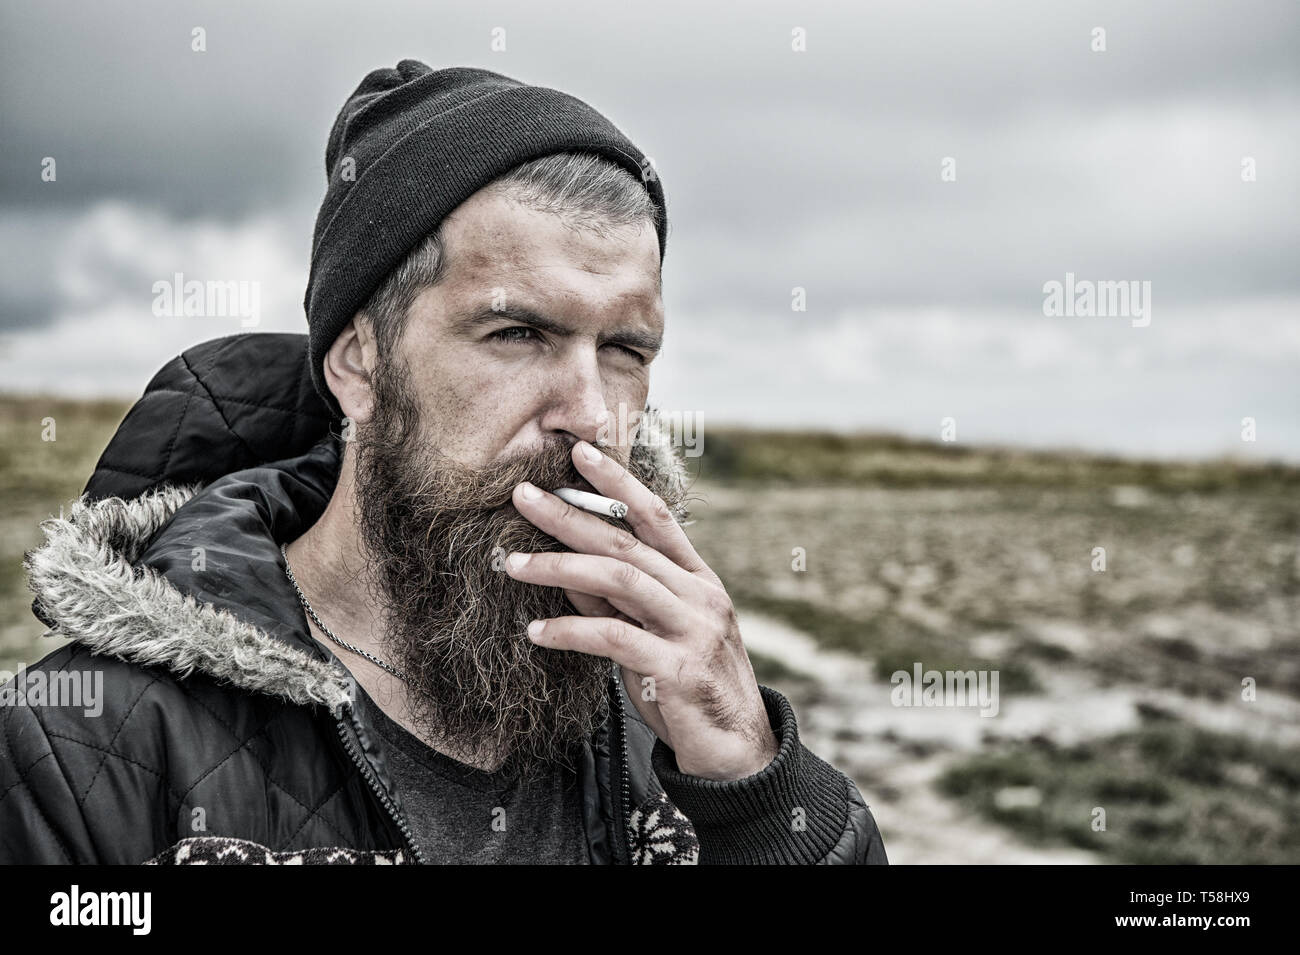 unhealthy lifestyle, bad habit and addiction, hiking and camping, traveling and wanderlust, hairdresser and barbershop, hair fashion, hipster lifestyle, people and nature, outwear fashion - Stock Image